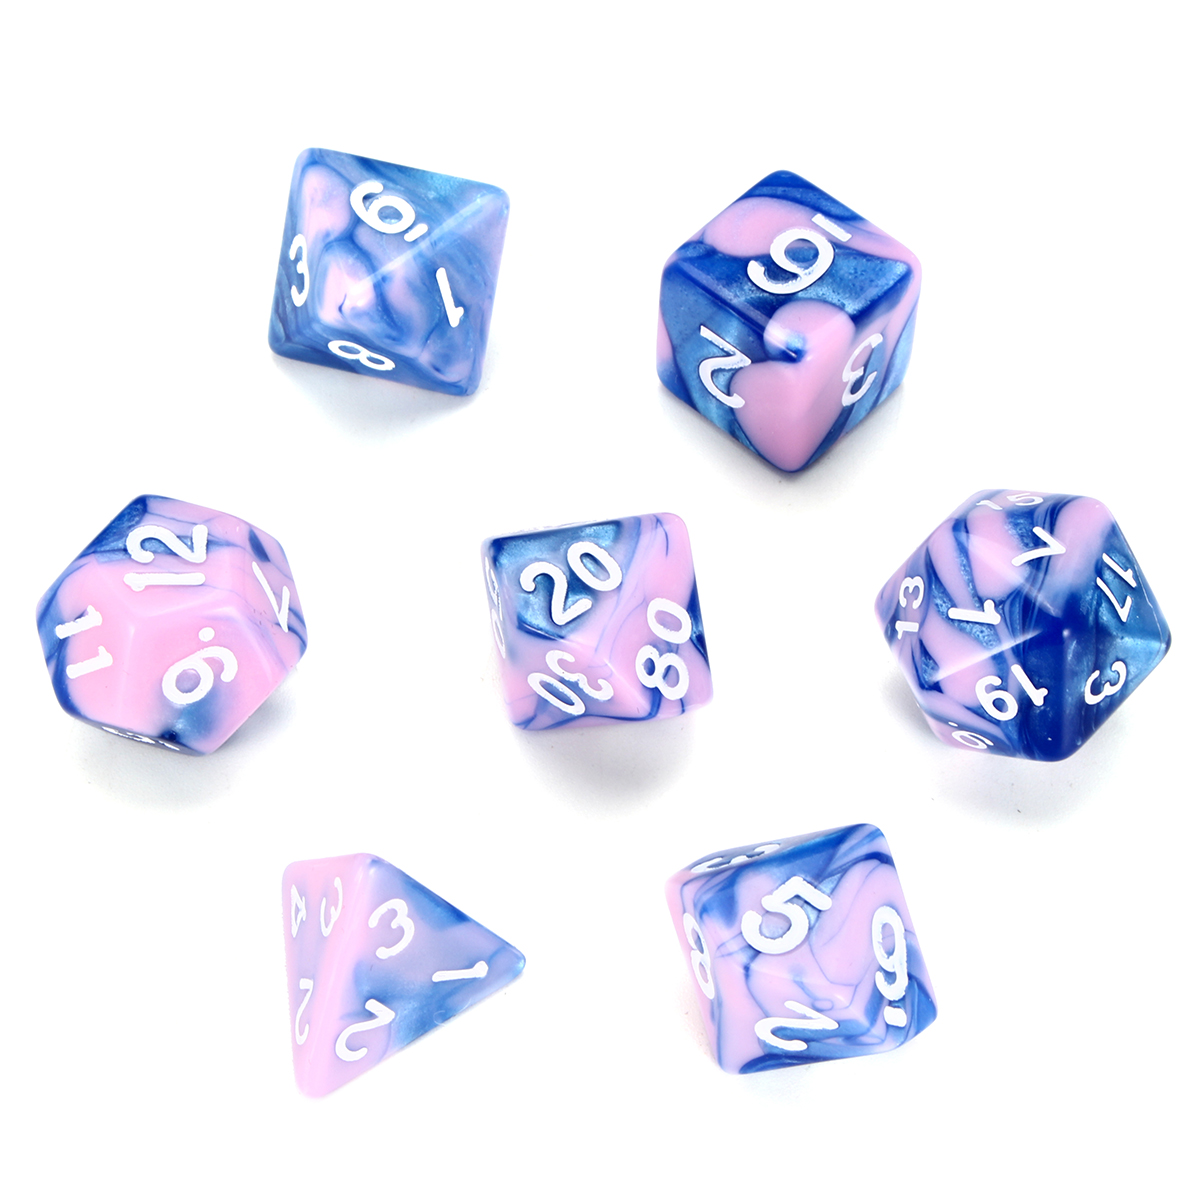 Moaere 7Pcs Two Colors Polyhedral Dice with Free Pouches for Dungeons and Dragons DND RPG MTG Table Games D4 D8 D10 D12 D20